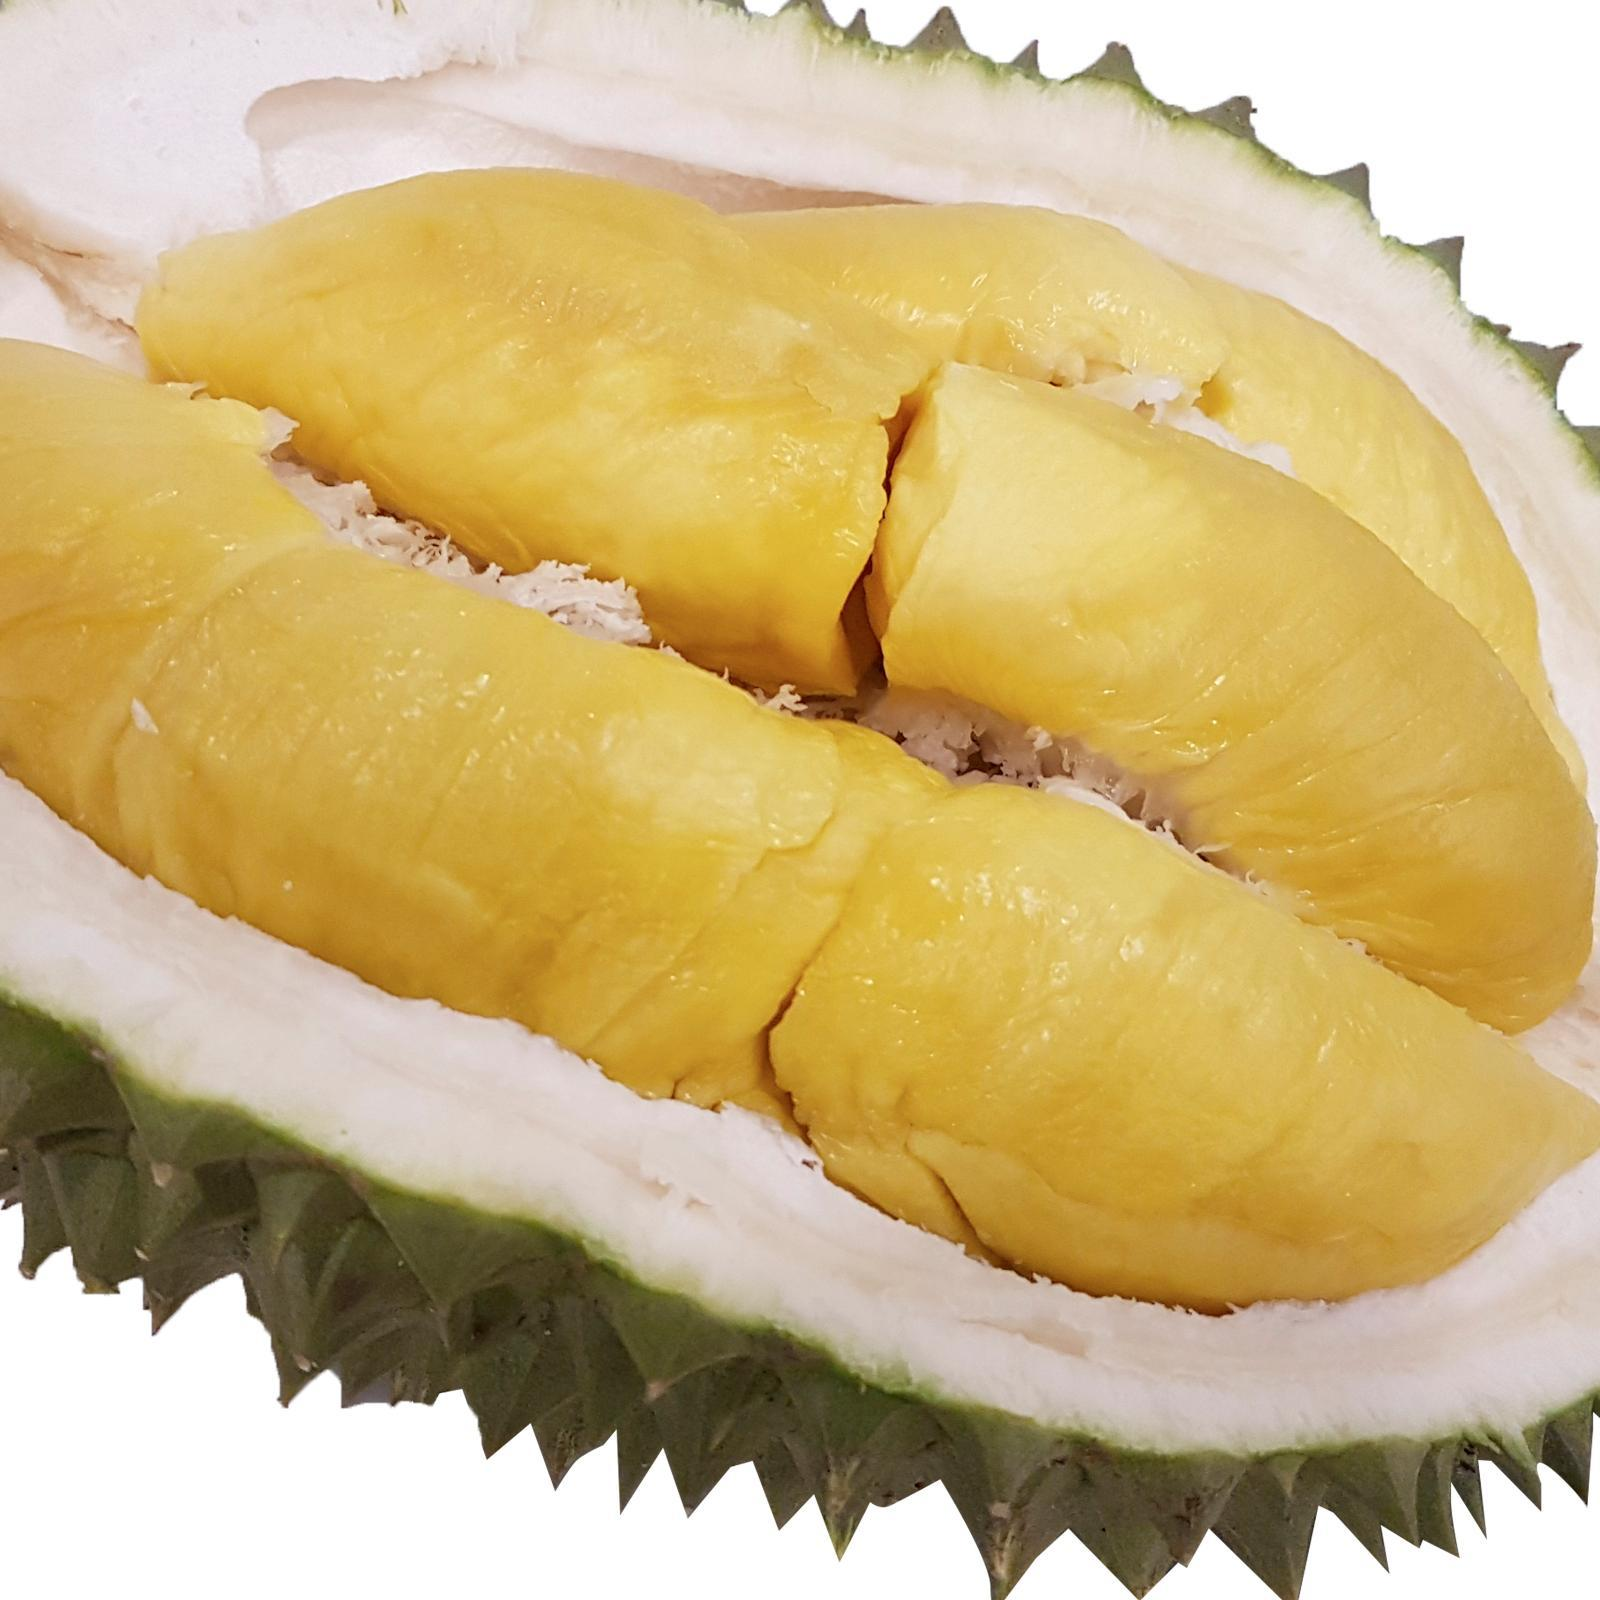 Fruit Monkeys MSW De-Husked Vacuum-Packed Fresh Durians